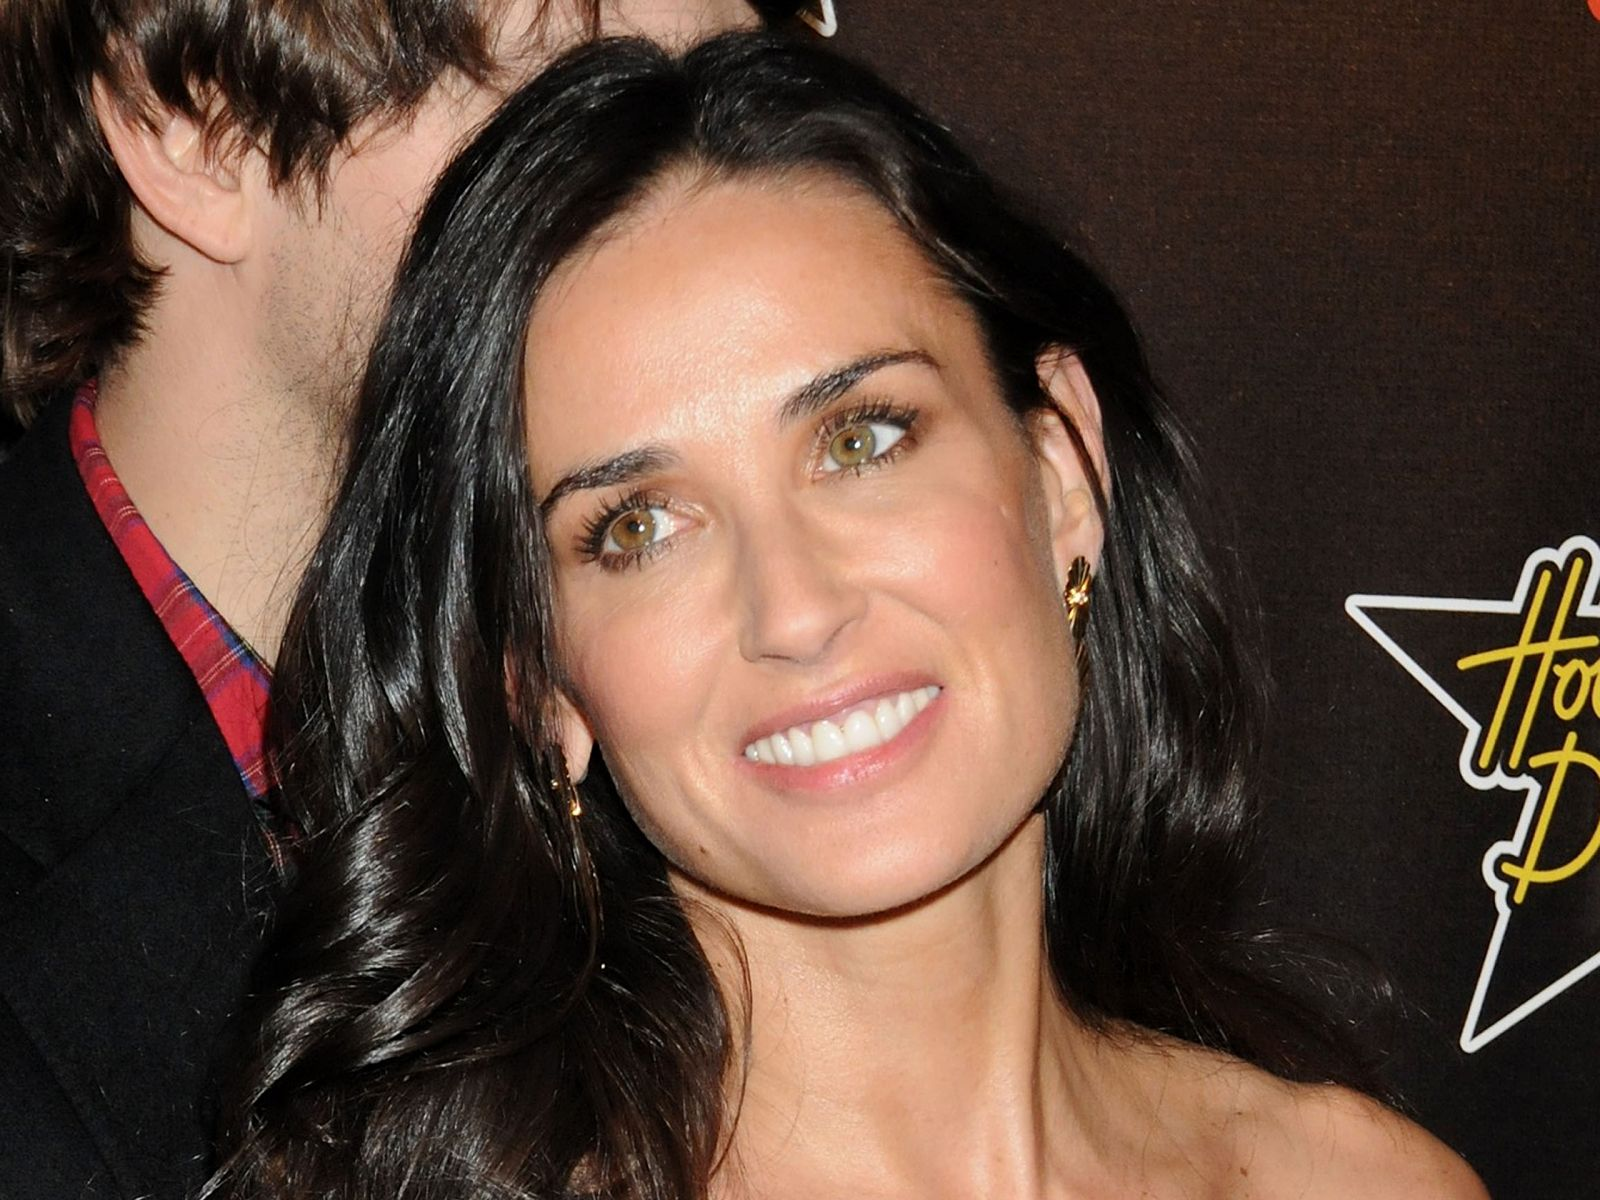 c8abcebffbb53 Actress Demi Moore Flaunts Bikini Body And New Boyfriend On Mexican Beach  (PHOTOS)